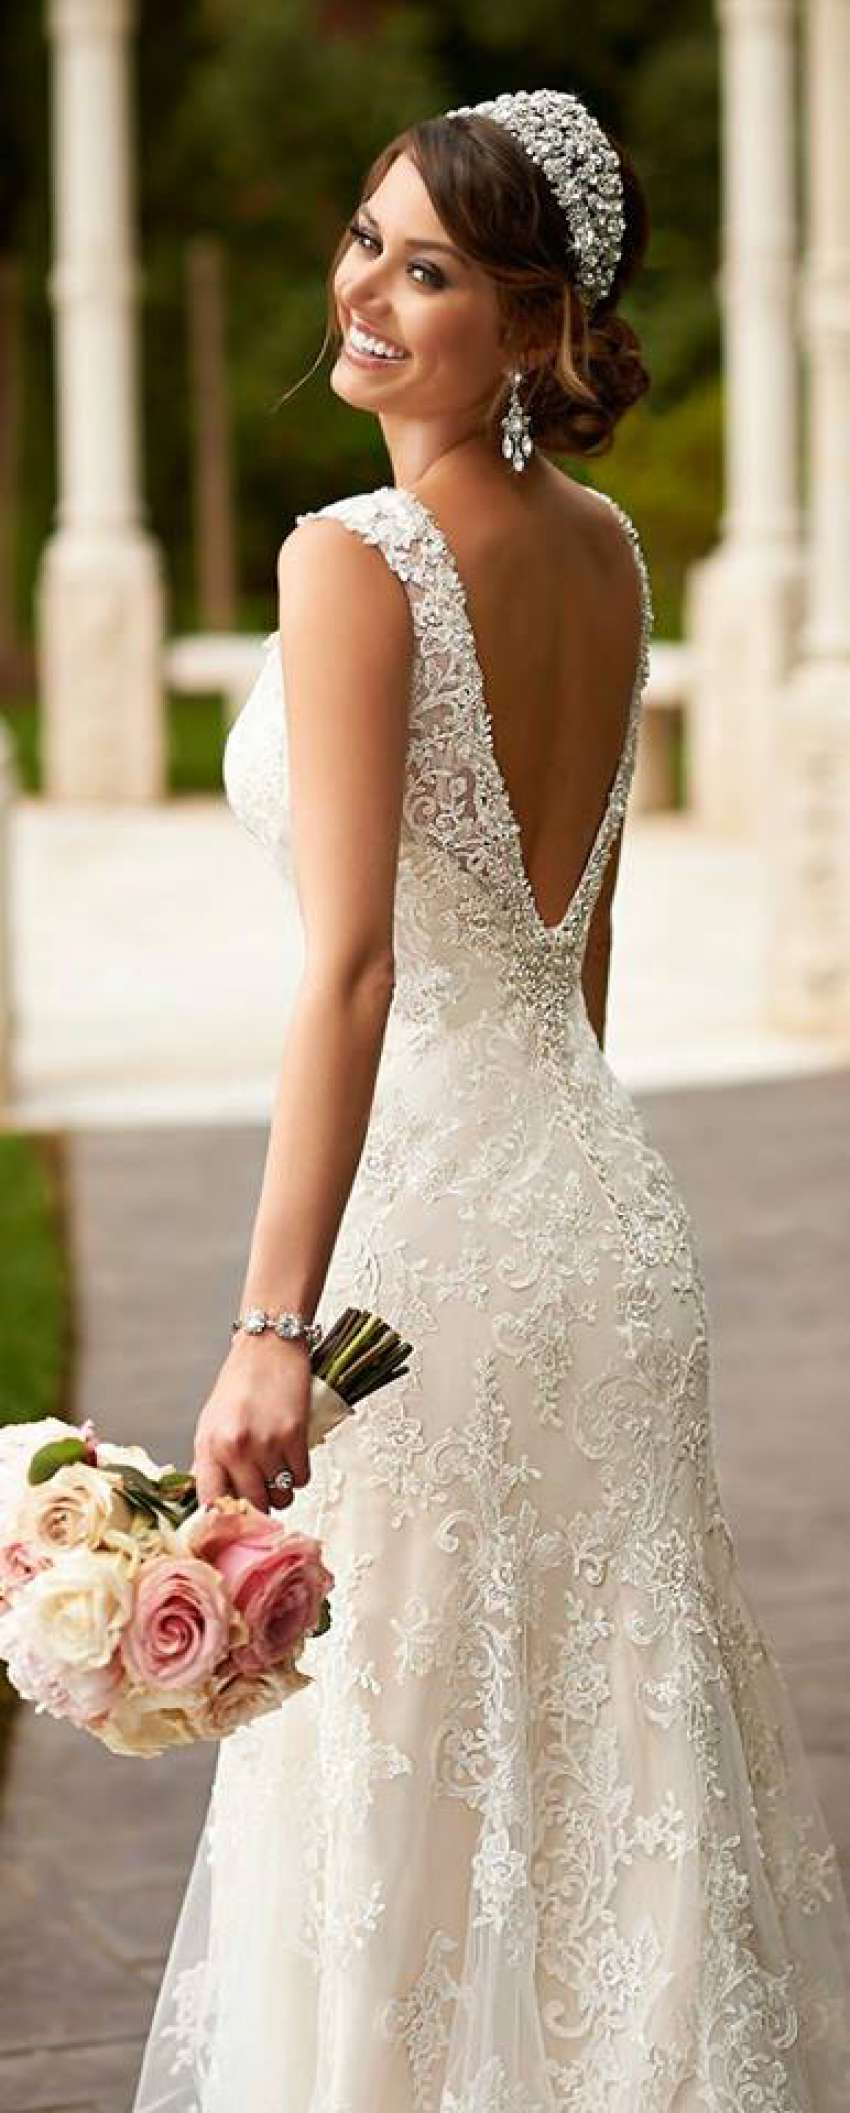 Wedding Dress Wonderland